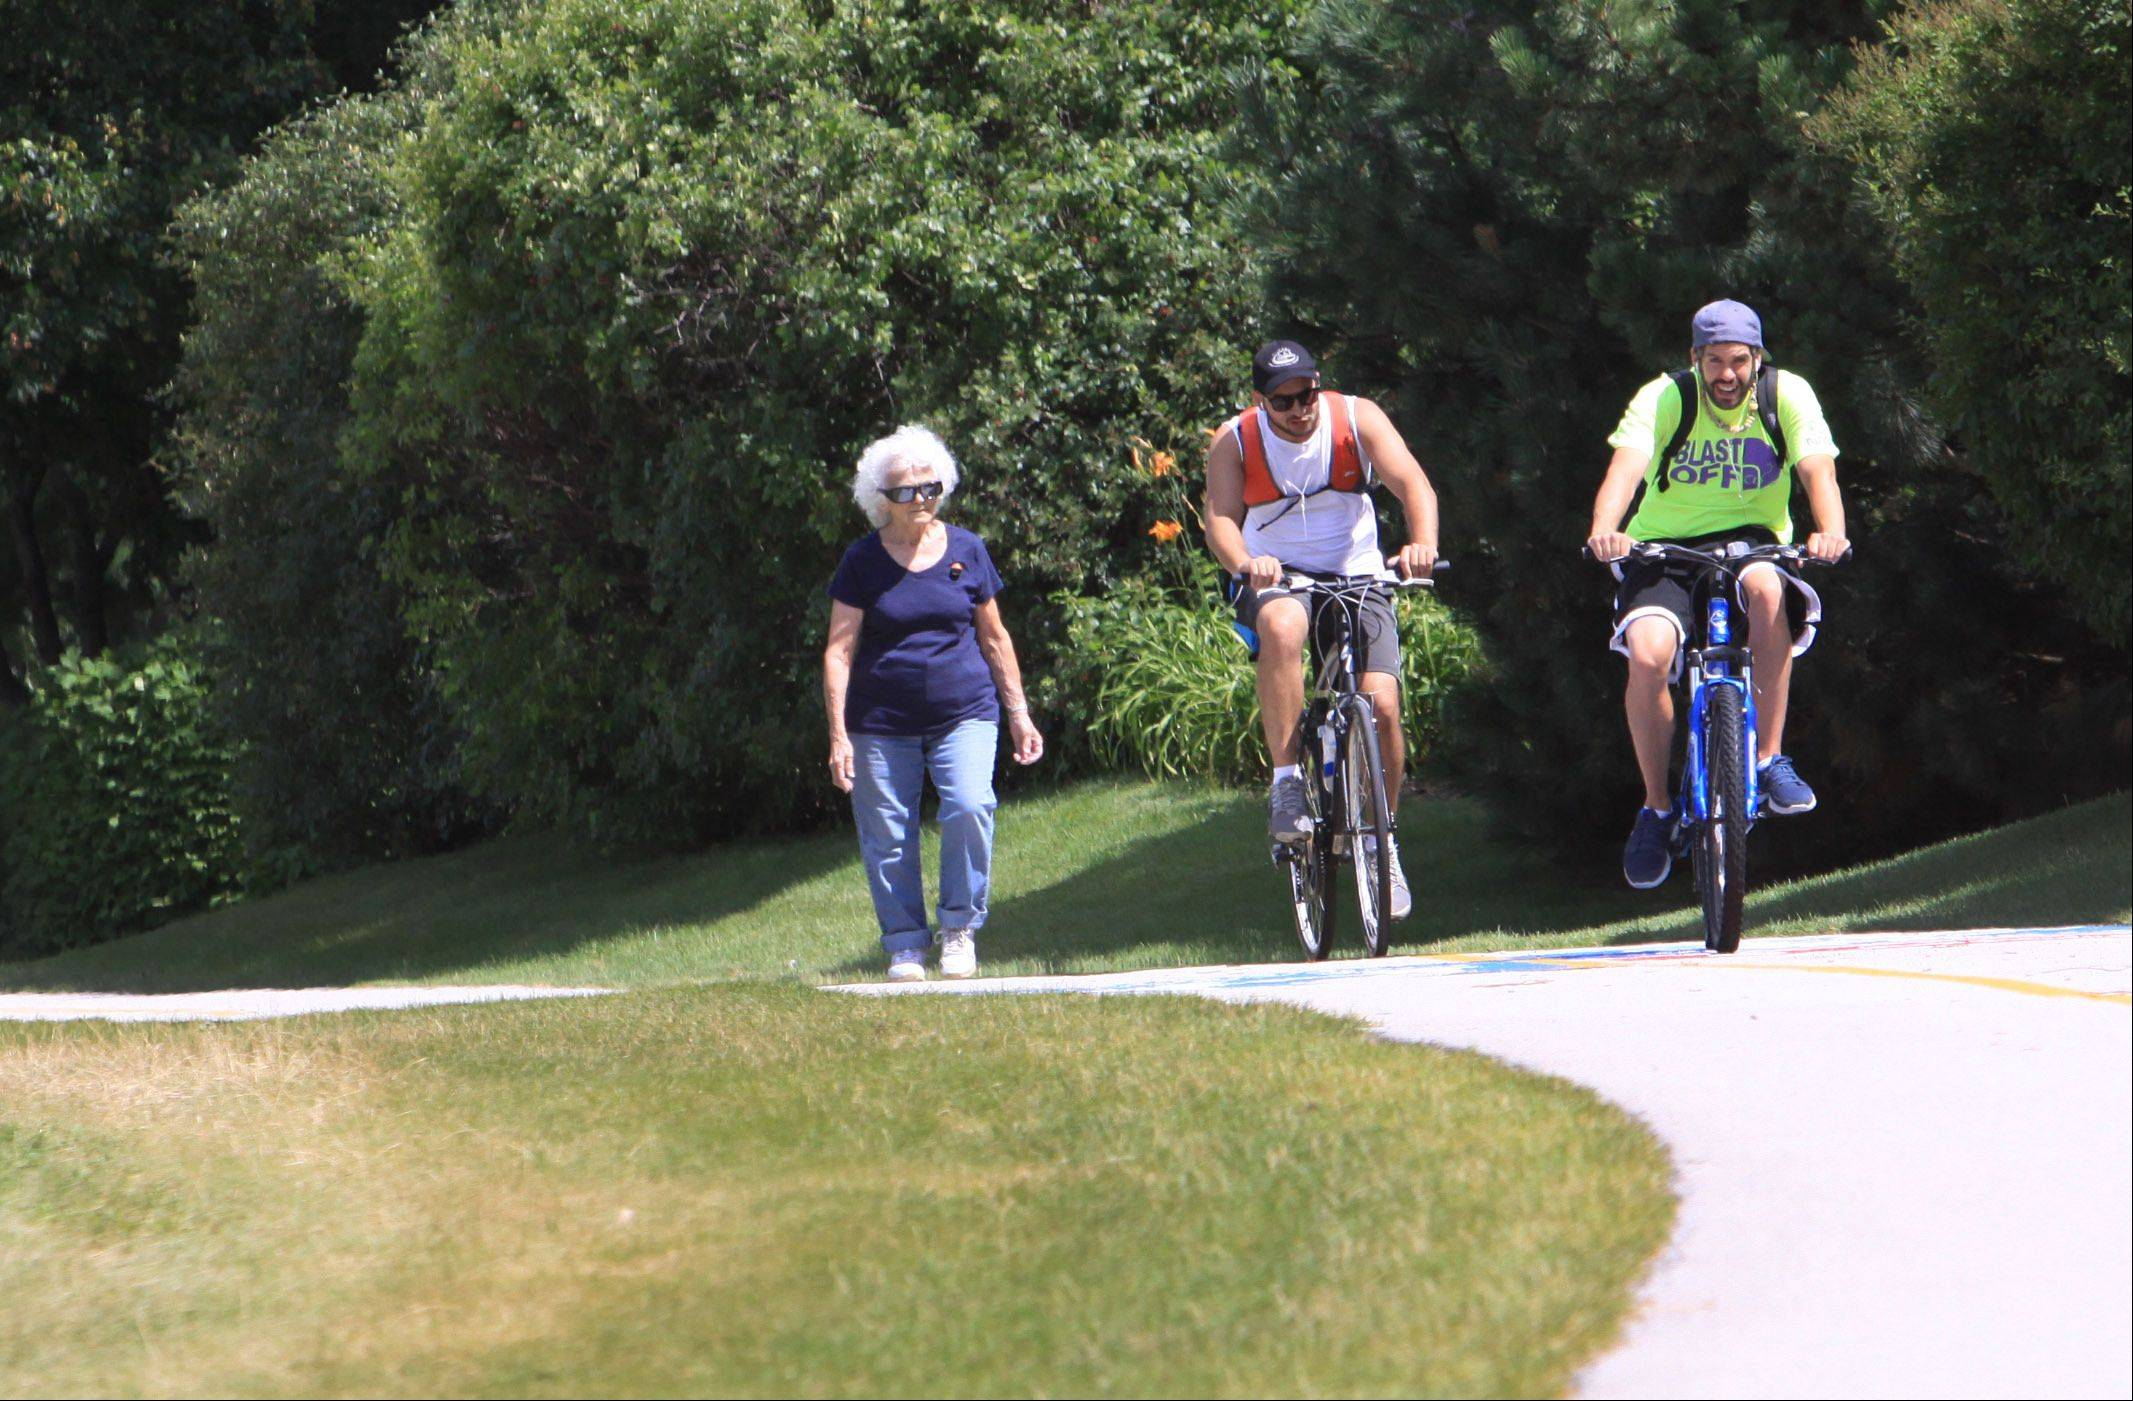 Not everyone has caught on to the new rules at Lake Arlington, including two bicyclists who passed Fran Kay of Elk Grove Village on Thursday, the first day the rules went into effect.